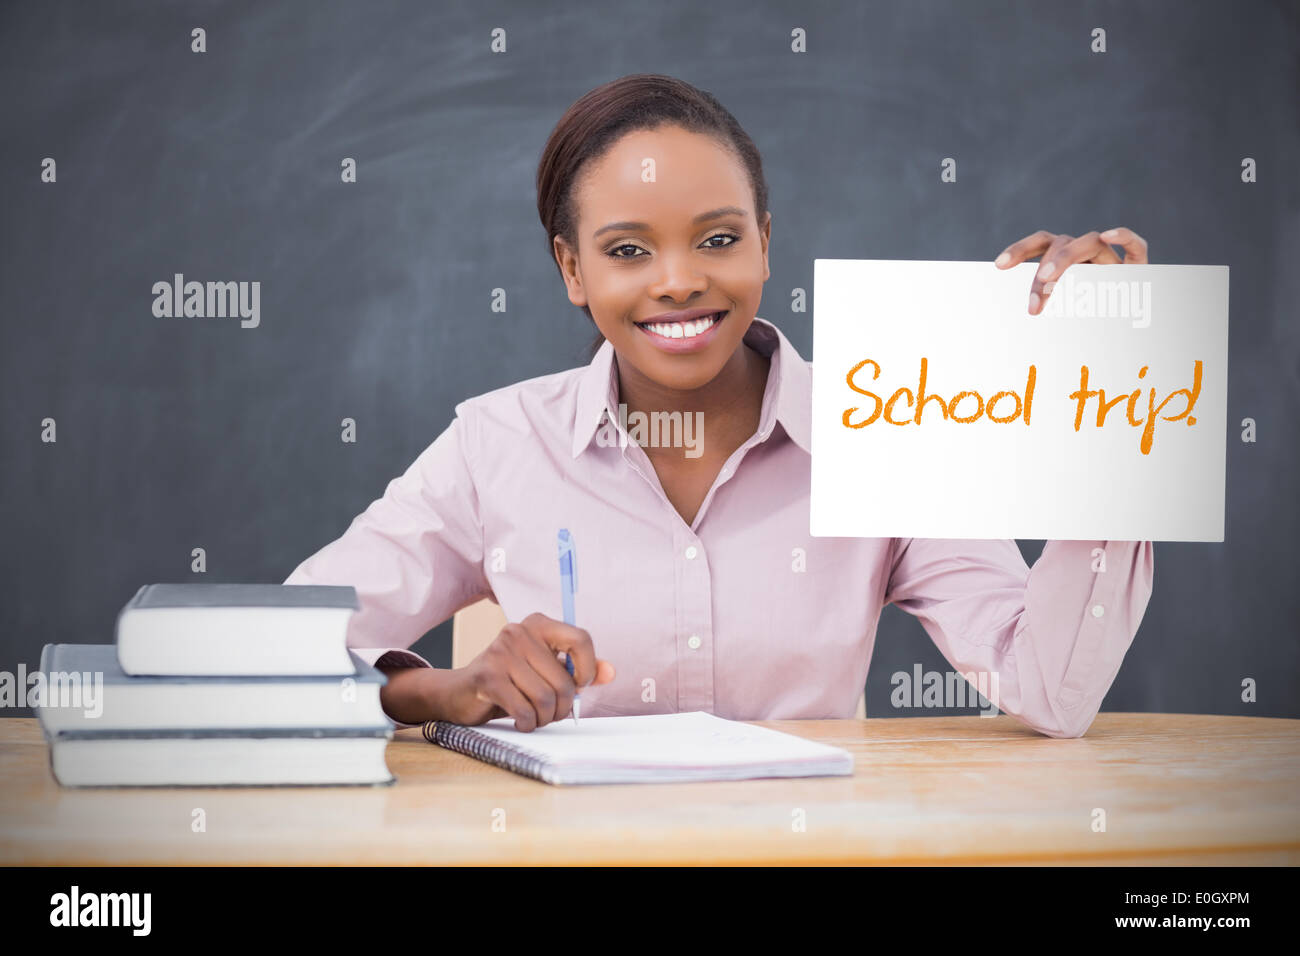 Happy teacher holding page showing school trip - Stock Image